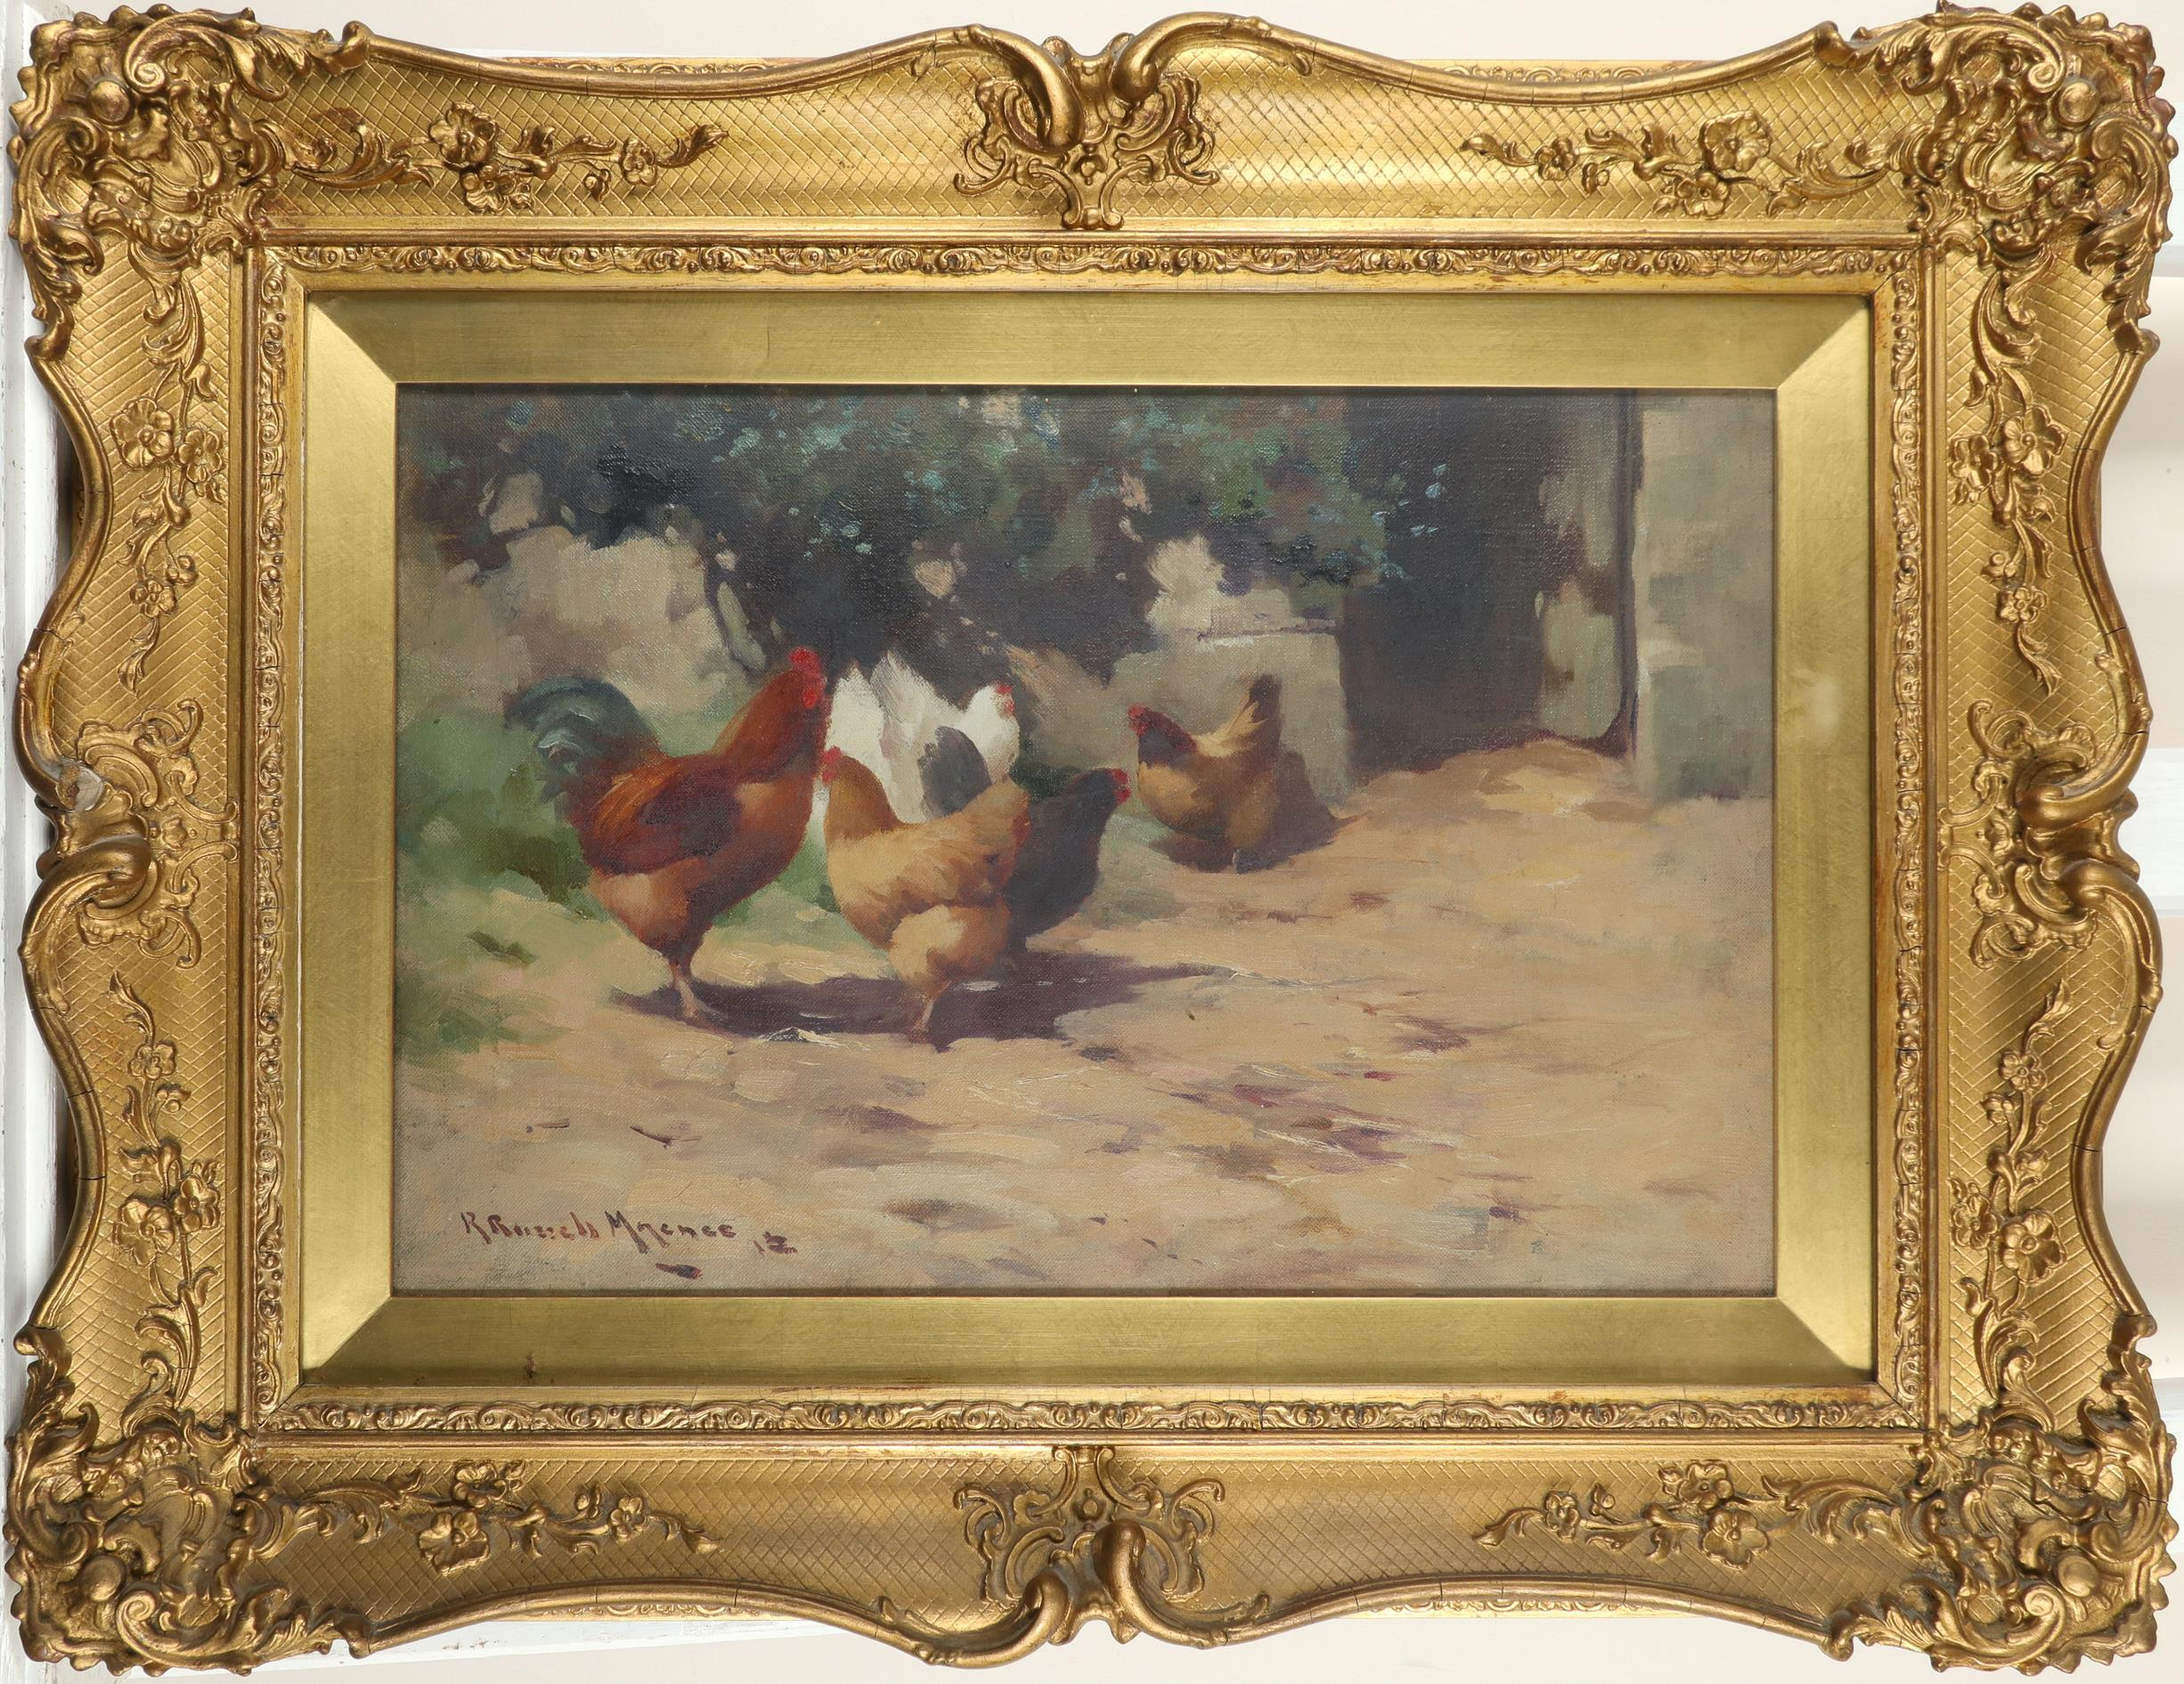 ‡Robert Russell Macnee (Scottish 1880-1952) The poultry yard Signed and dated R Russell Macnee 12 ( - Image 2 of 3